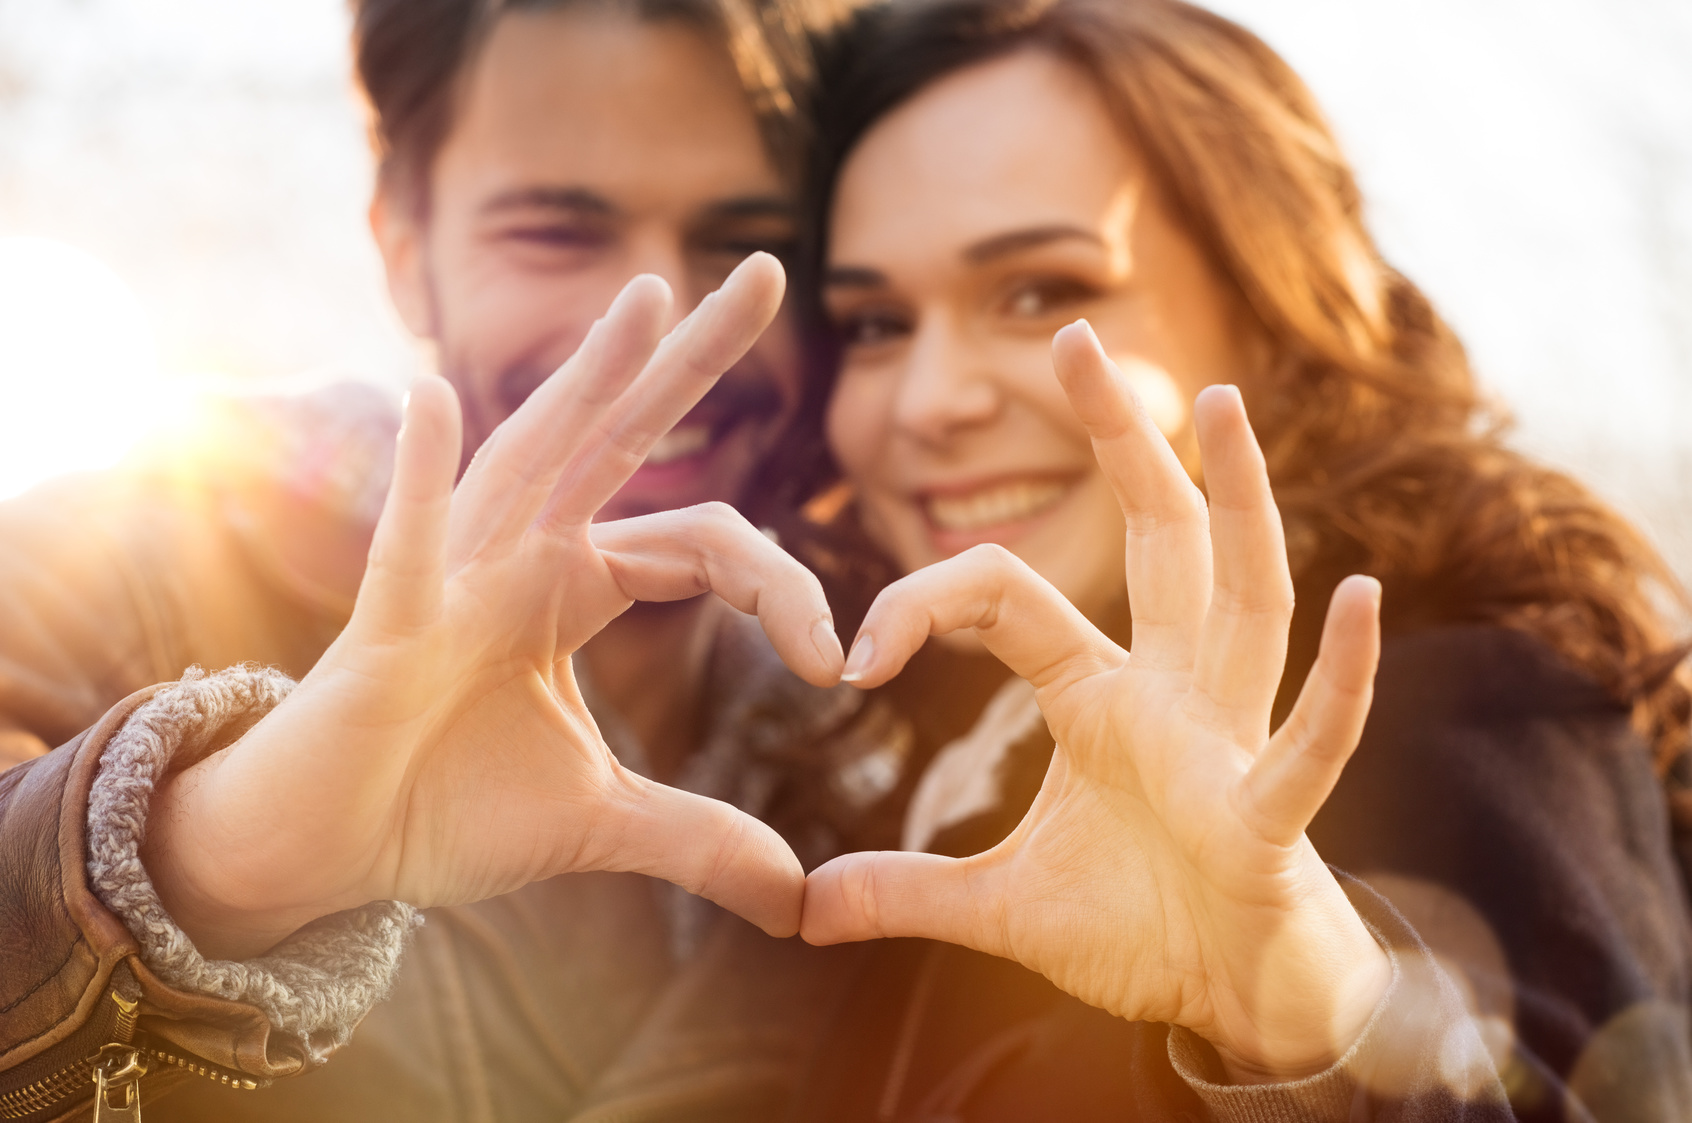 Closeup of couple making heart shape with hands